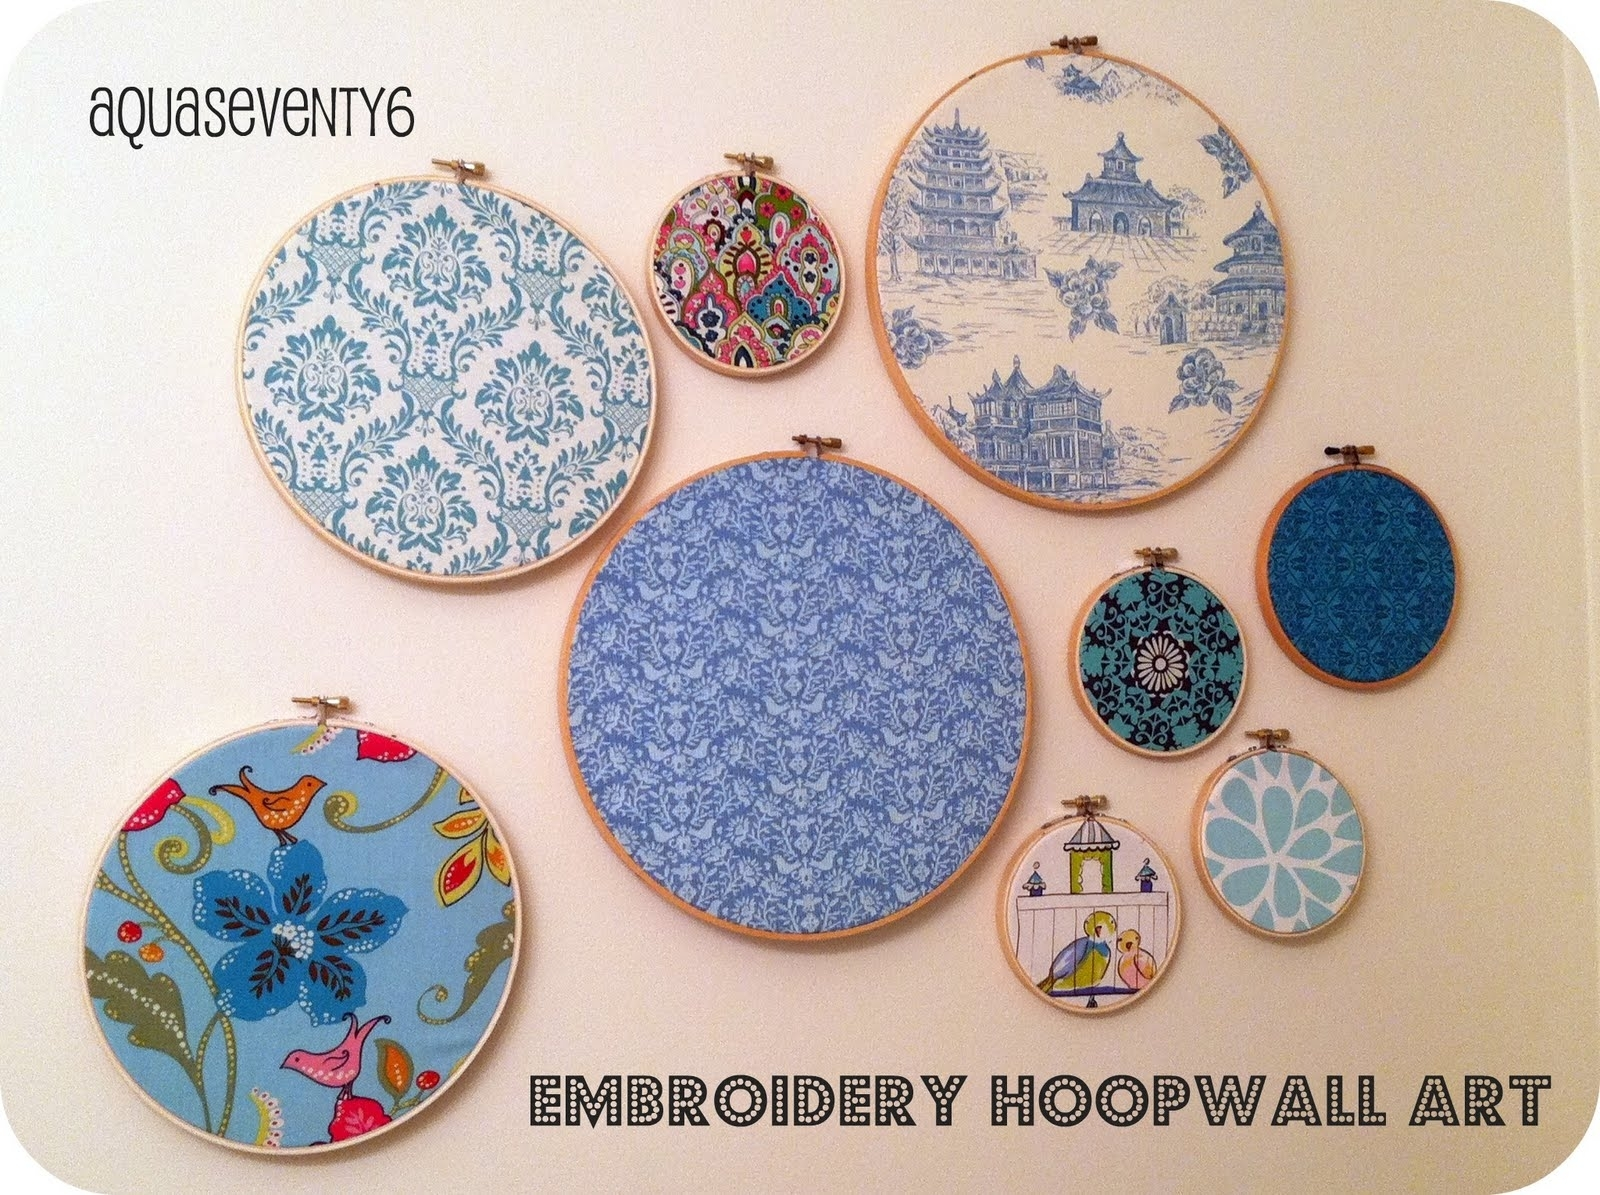 Aqua Seventy6: Embroidery Hoop Wall Art With Current Fabric Hoop Wall Art (View 1 of 15)